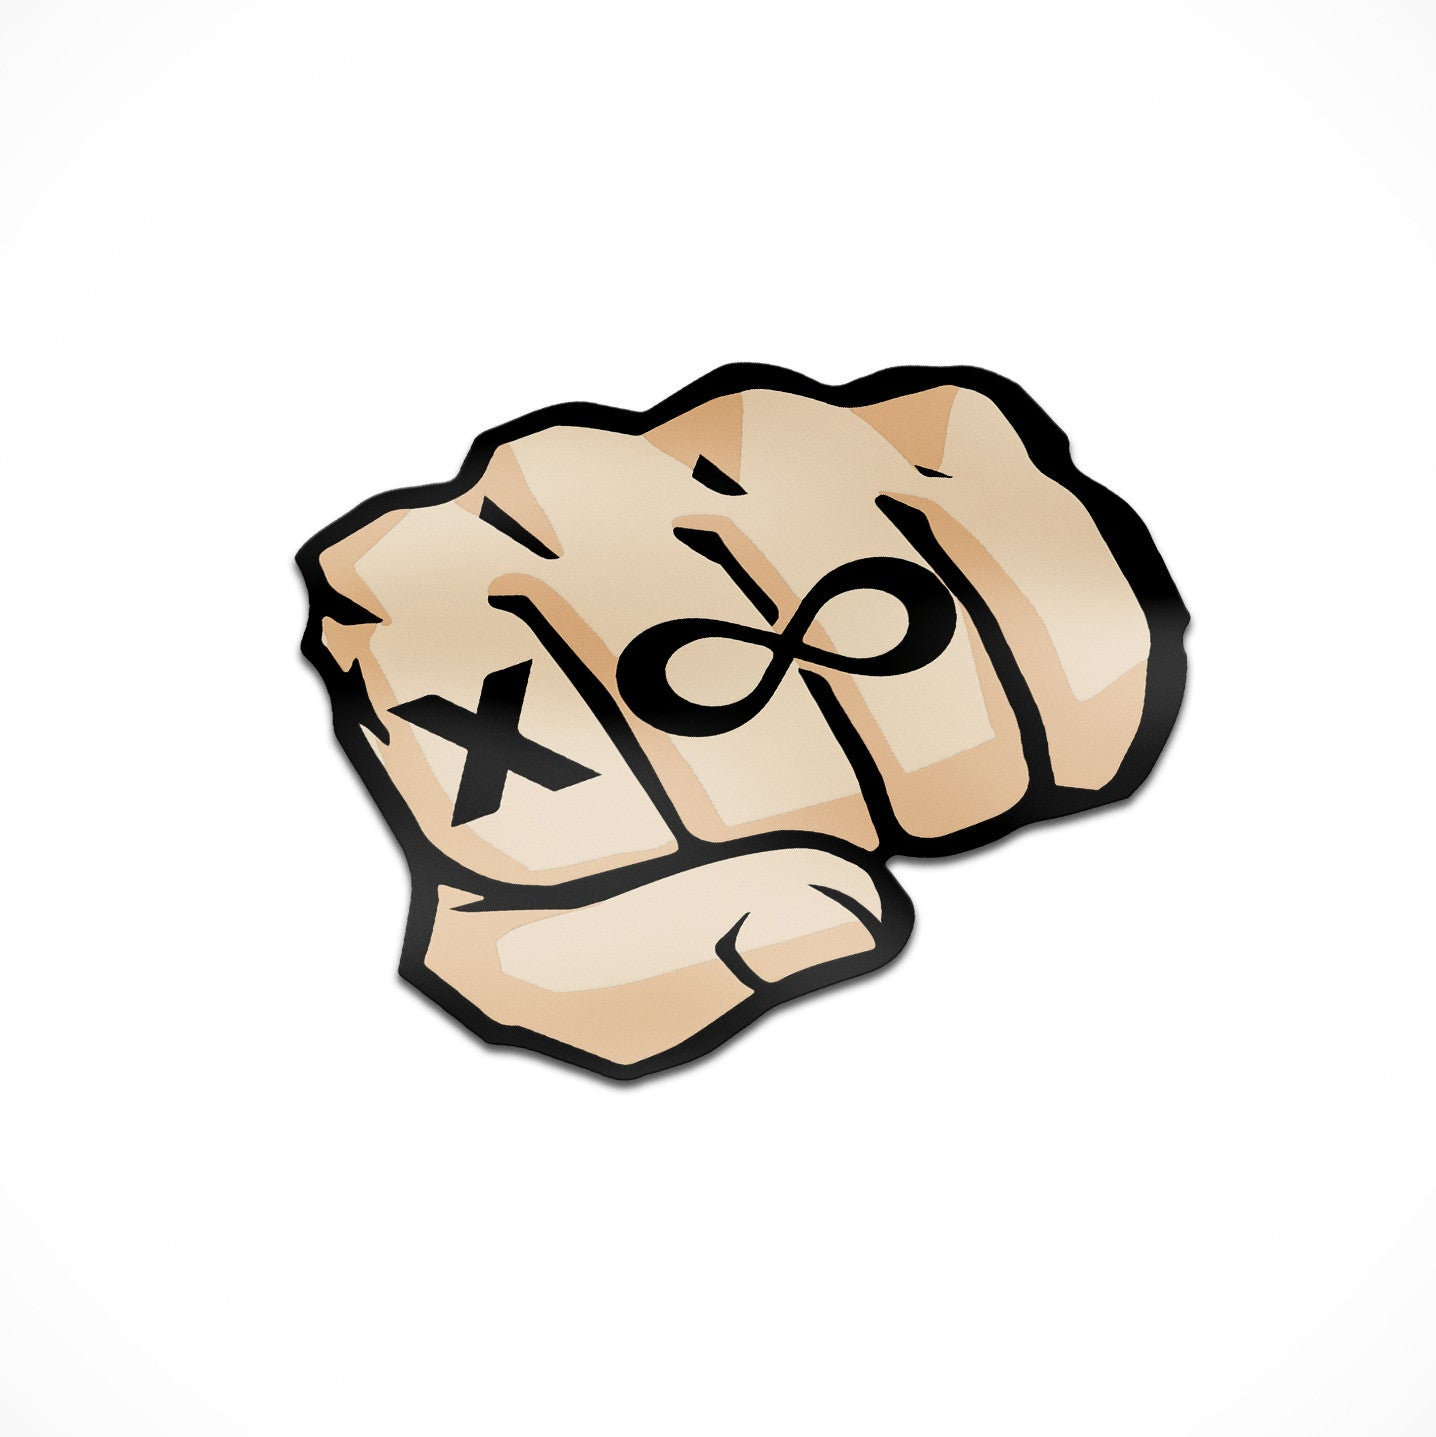 The Kleb Fist Bump Sticker